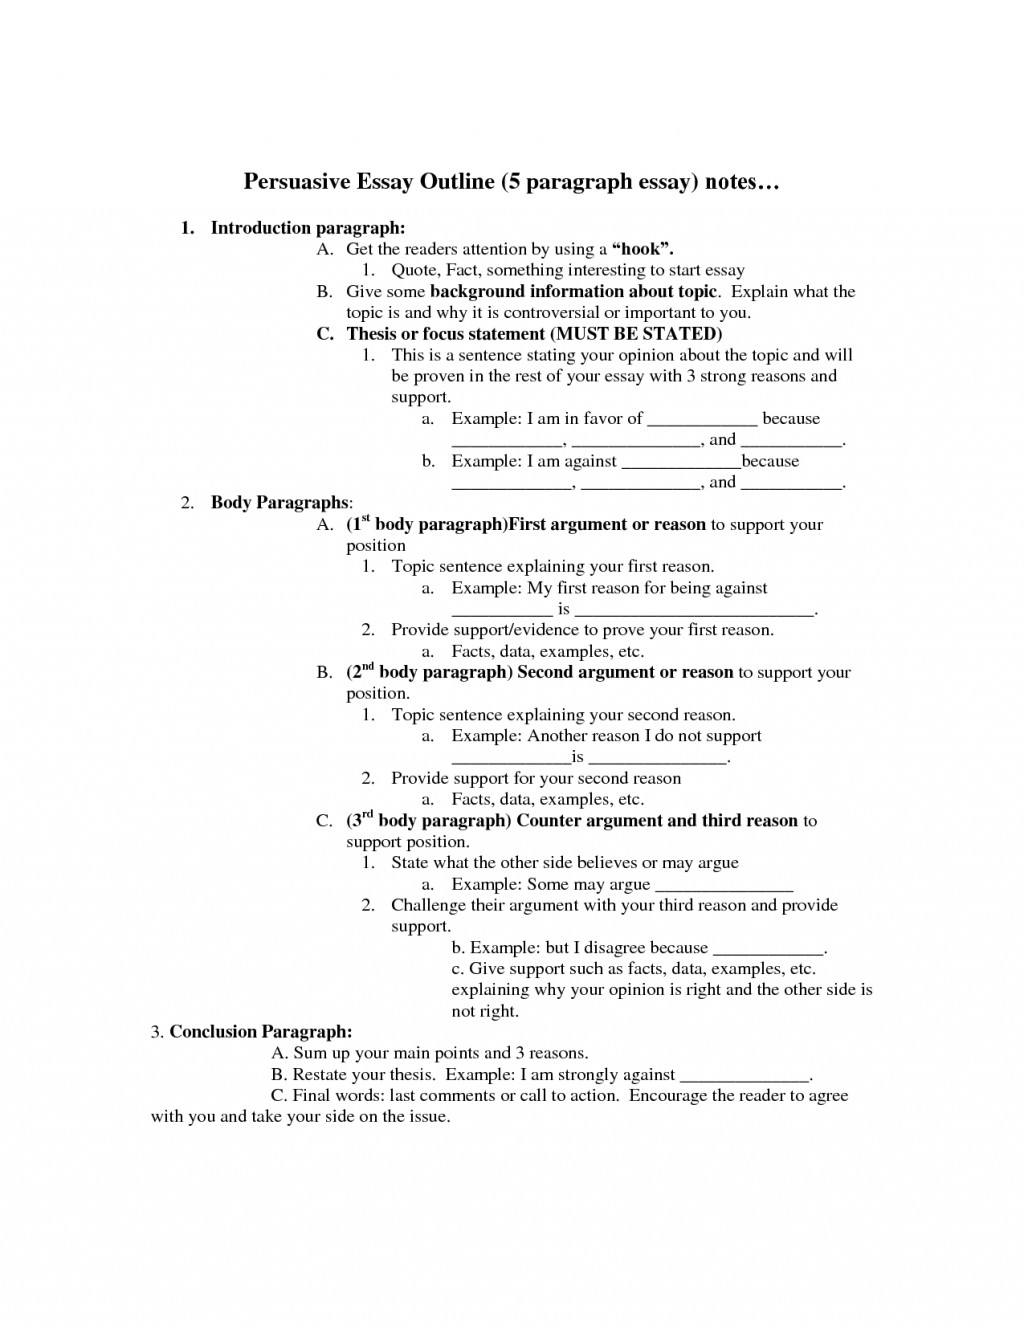 026 Paragraph Essay Outline Persuasive Onwe Bioinnovate Co Within High School Amazing 5 Google Doc Printable Large